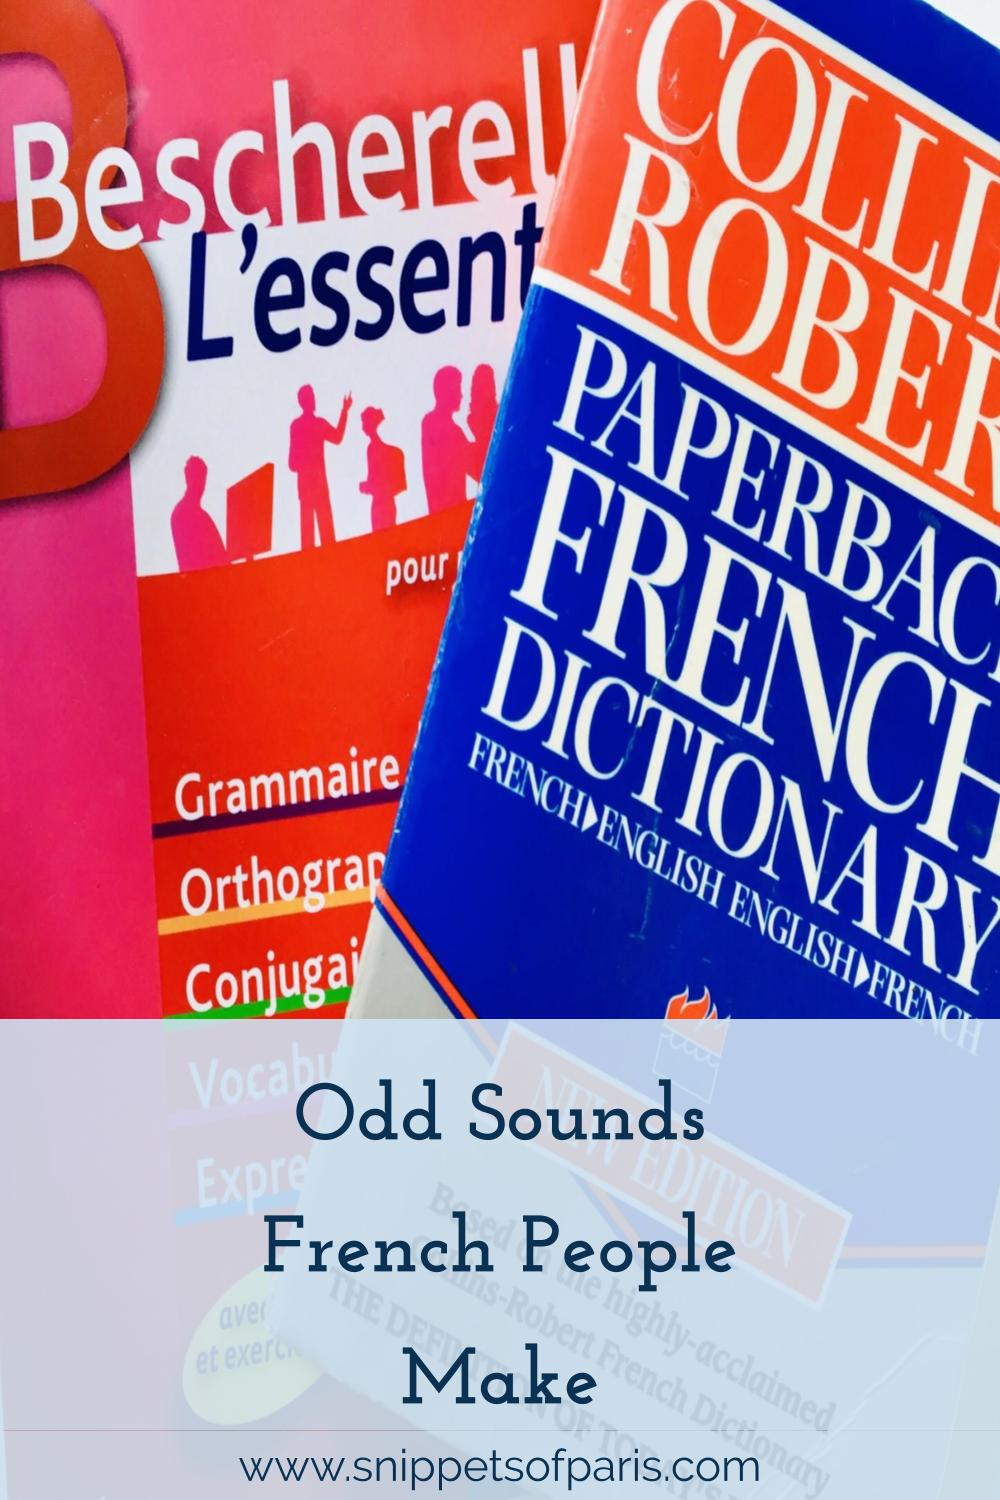 Loosen your jaw muscles, it\'s time for few odd french sounds, words, and expressions! No french lesson would be complete without it! #learnfrench #speakfrench